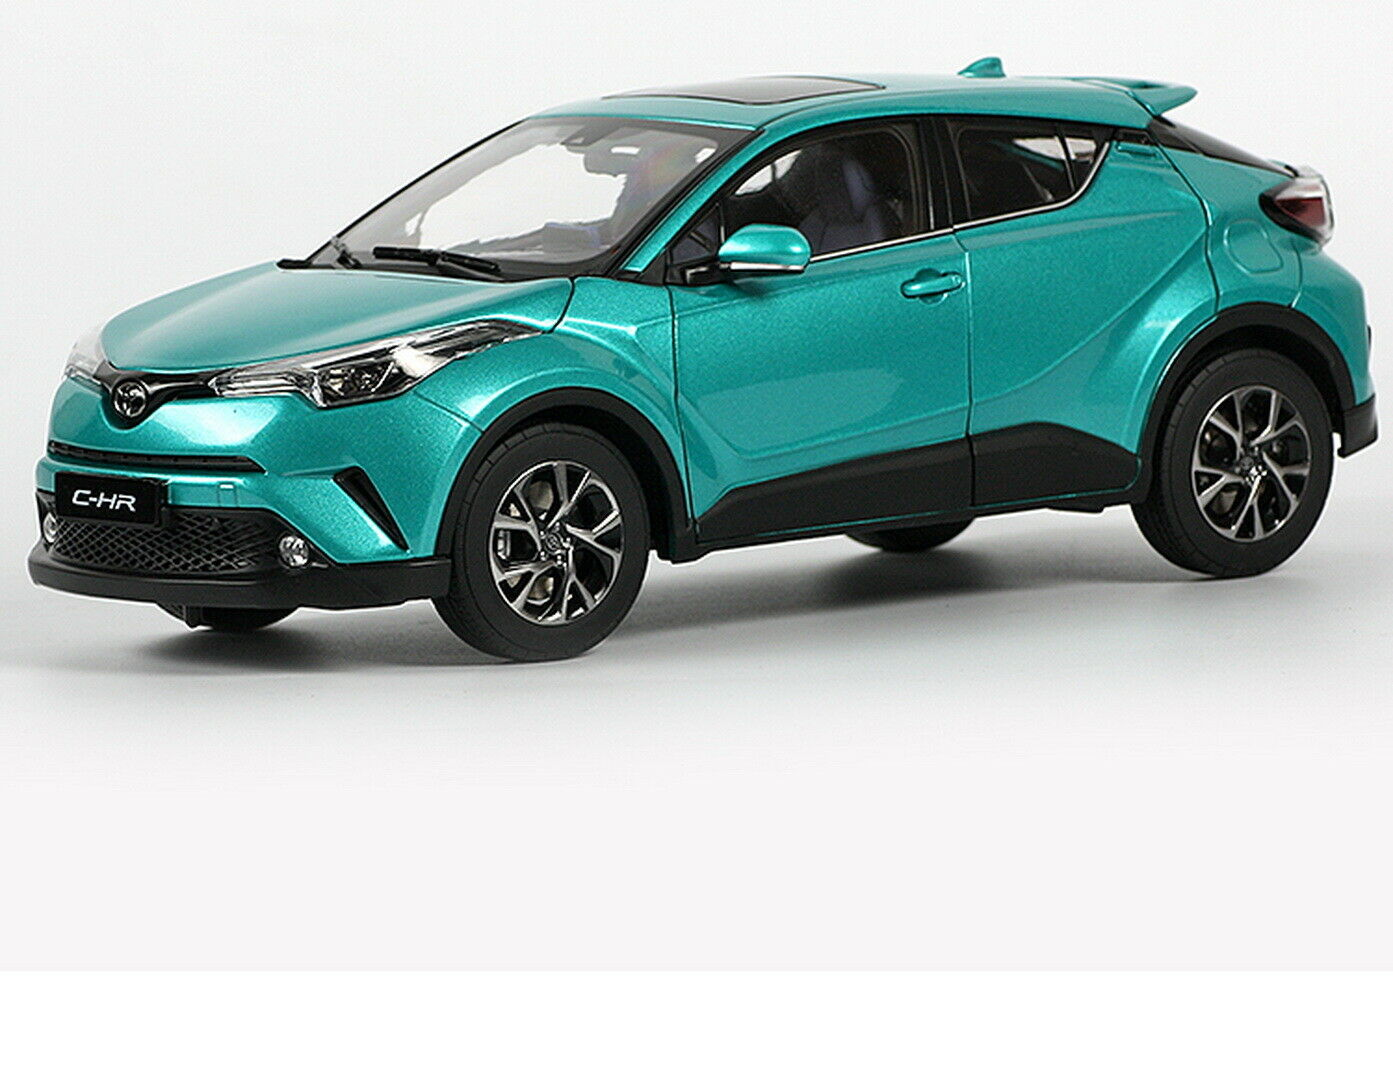 1 18 Scale Toyota C-HR CHR verde Diecast Car Model Toy Collection Gift NIB